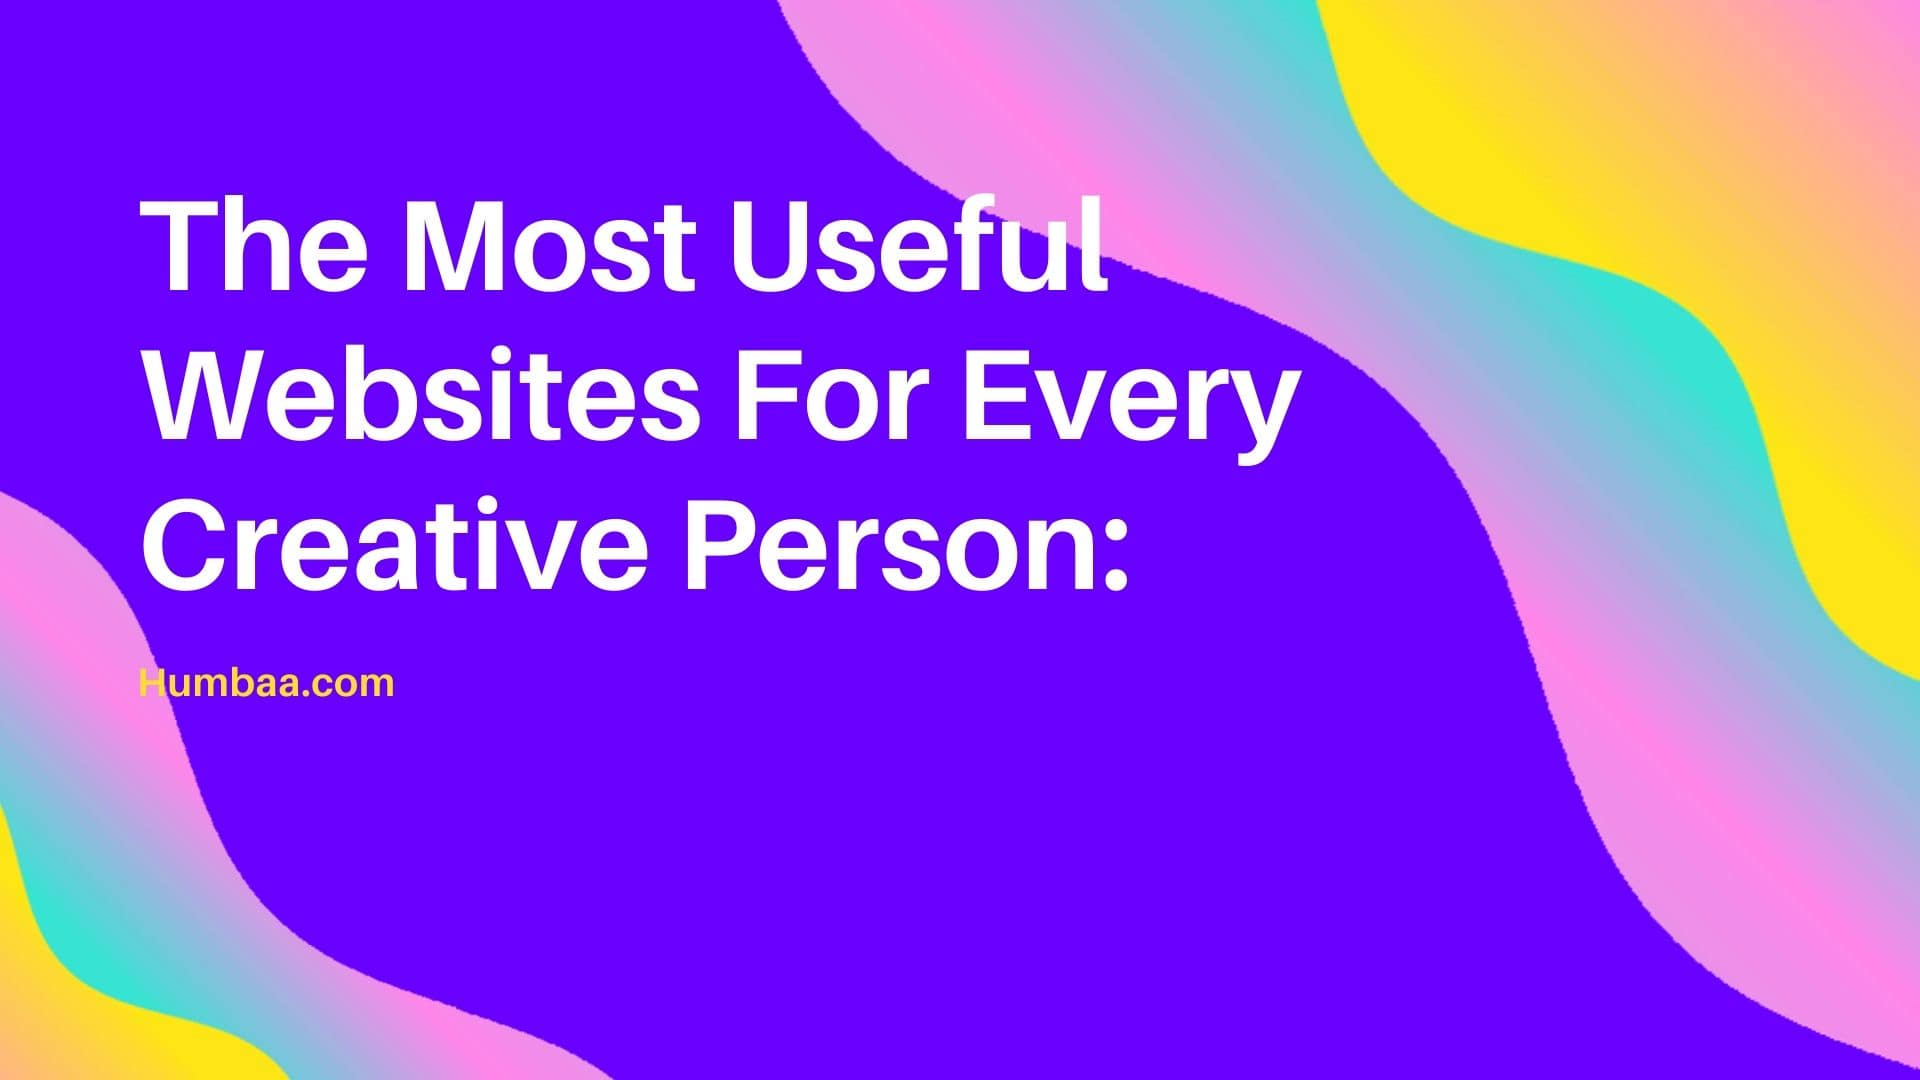 The-Most-Useful-Websites-For-Every-Creative-Person-min